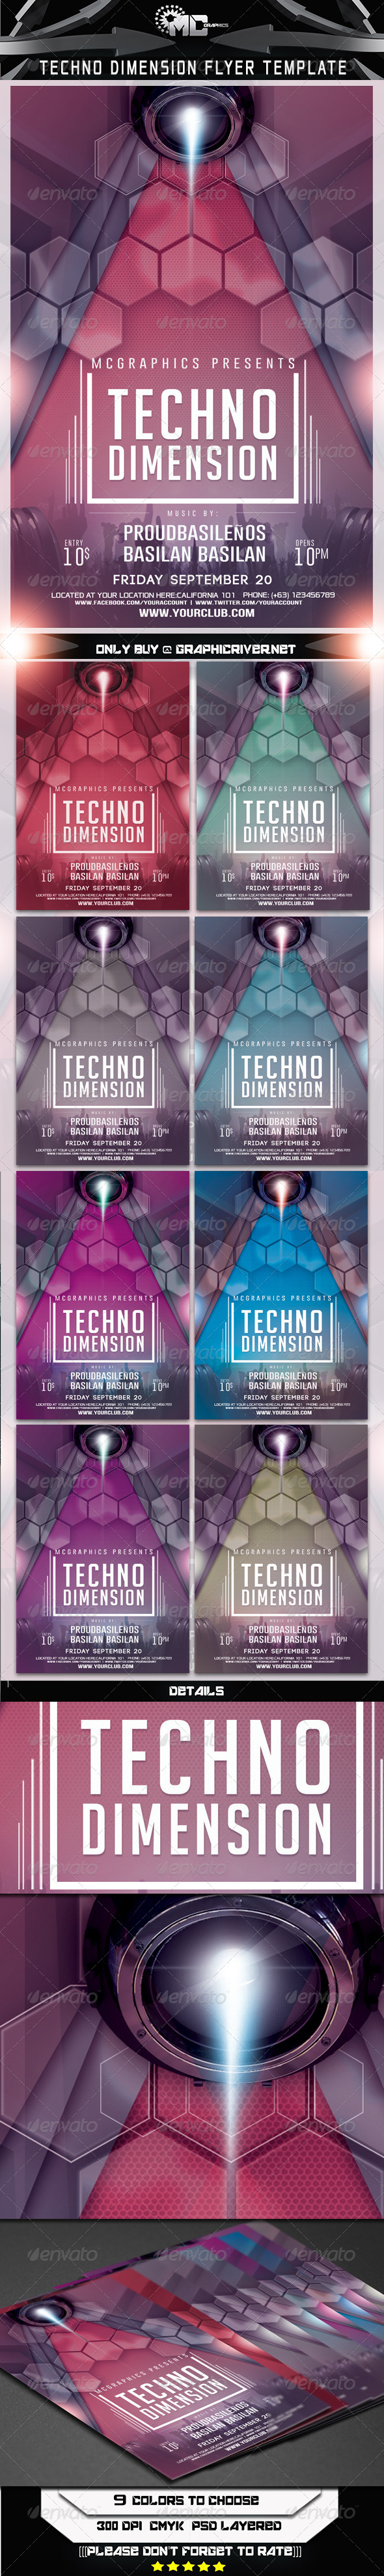 Techno Dimension Flyer Template - Clubs & Parties Events